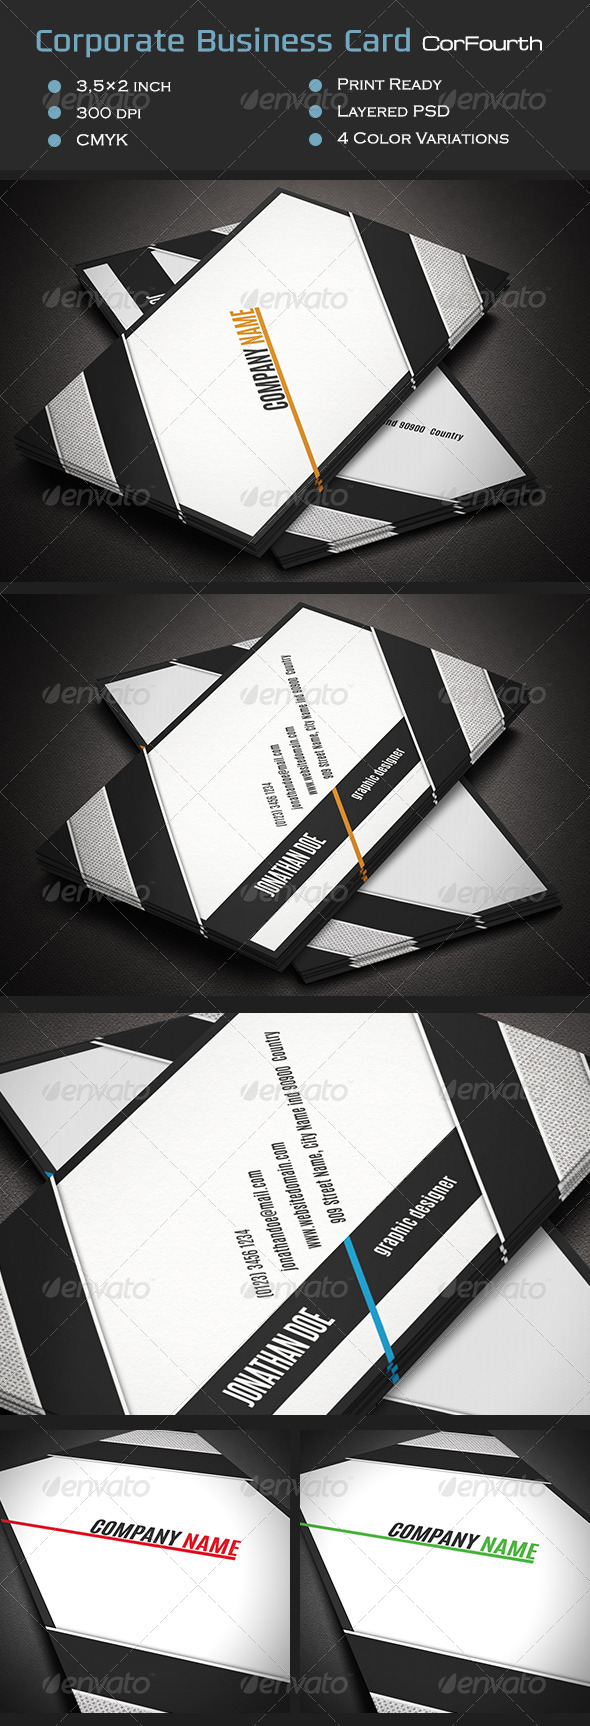 Corporate Business Card CorFourth